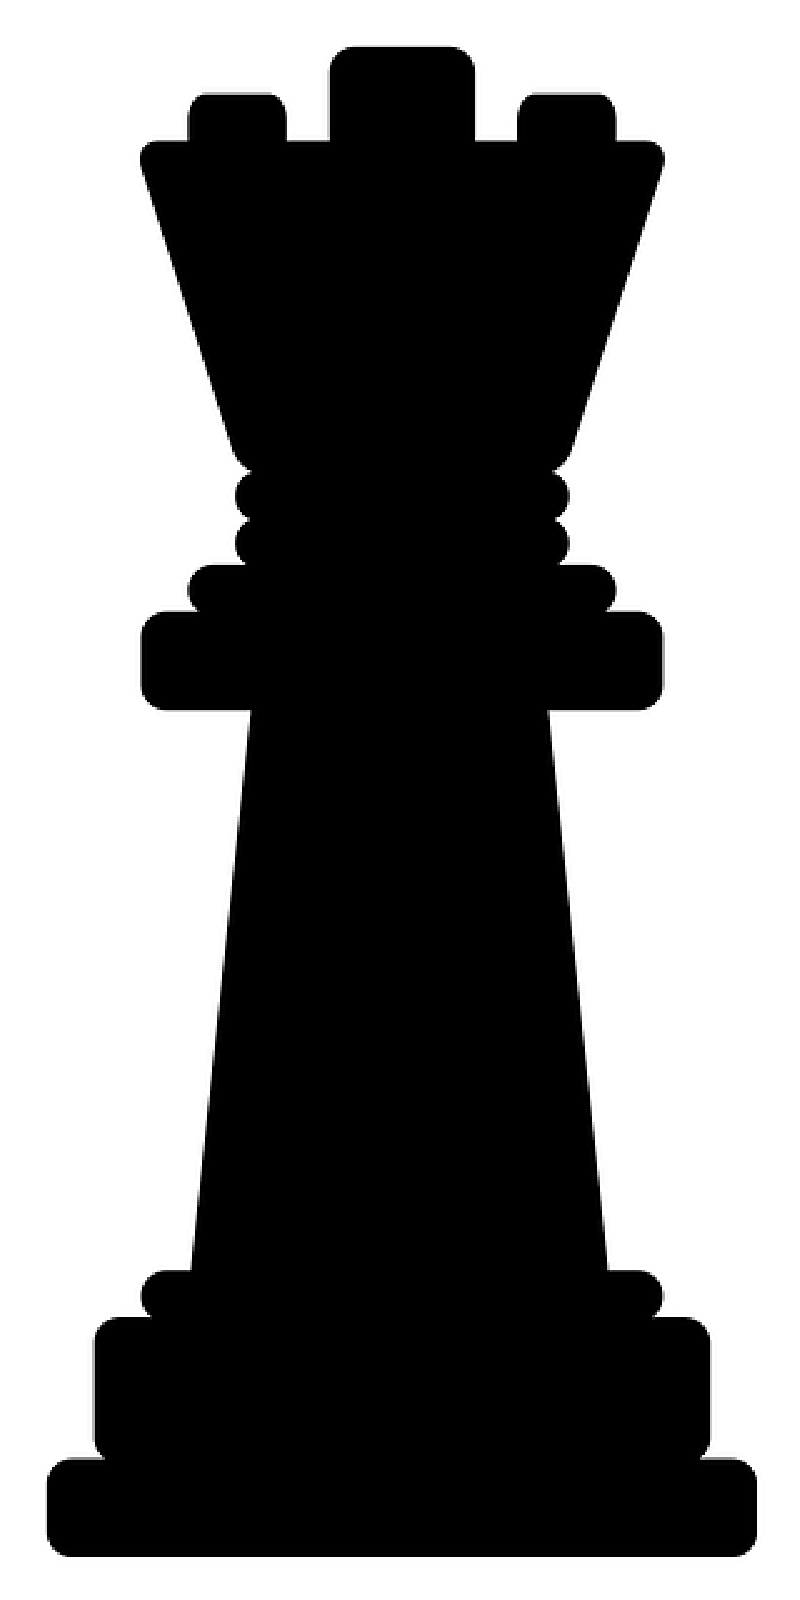 800x1600 Outline, Drawing, Silhouette, King, Figure, Queen